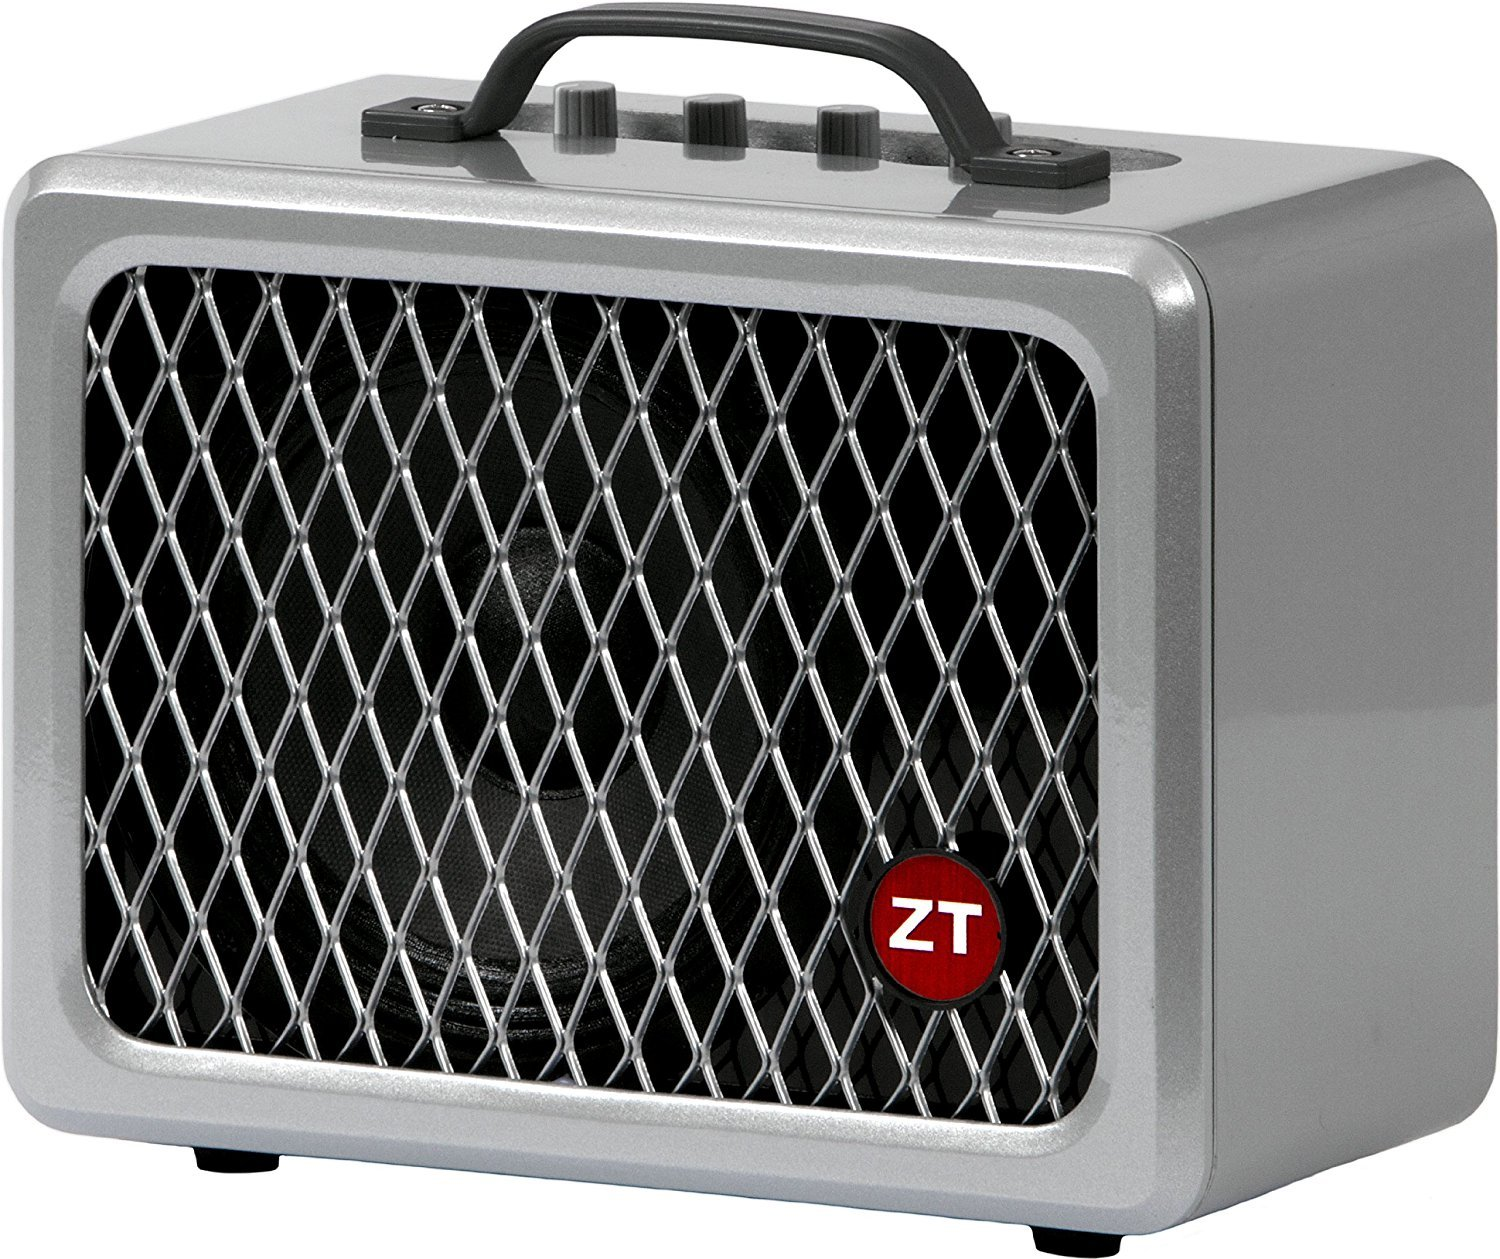 ZT Amplifiers Lunchbox 200-watt Class A/B Guitar Amplifier with 6.5-inch Internal Speaker by ZT Amplifiers (Image #2)